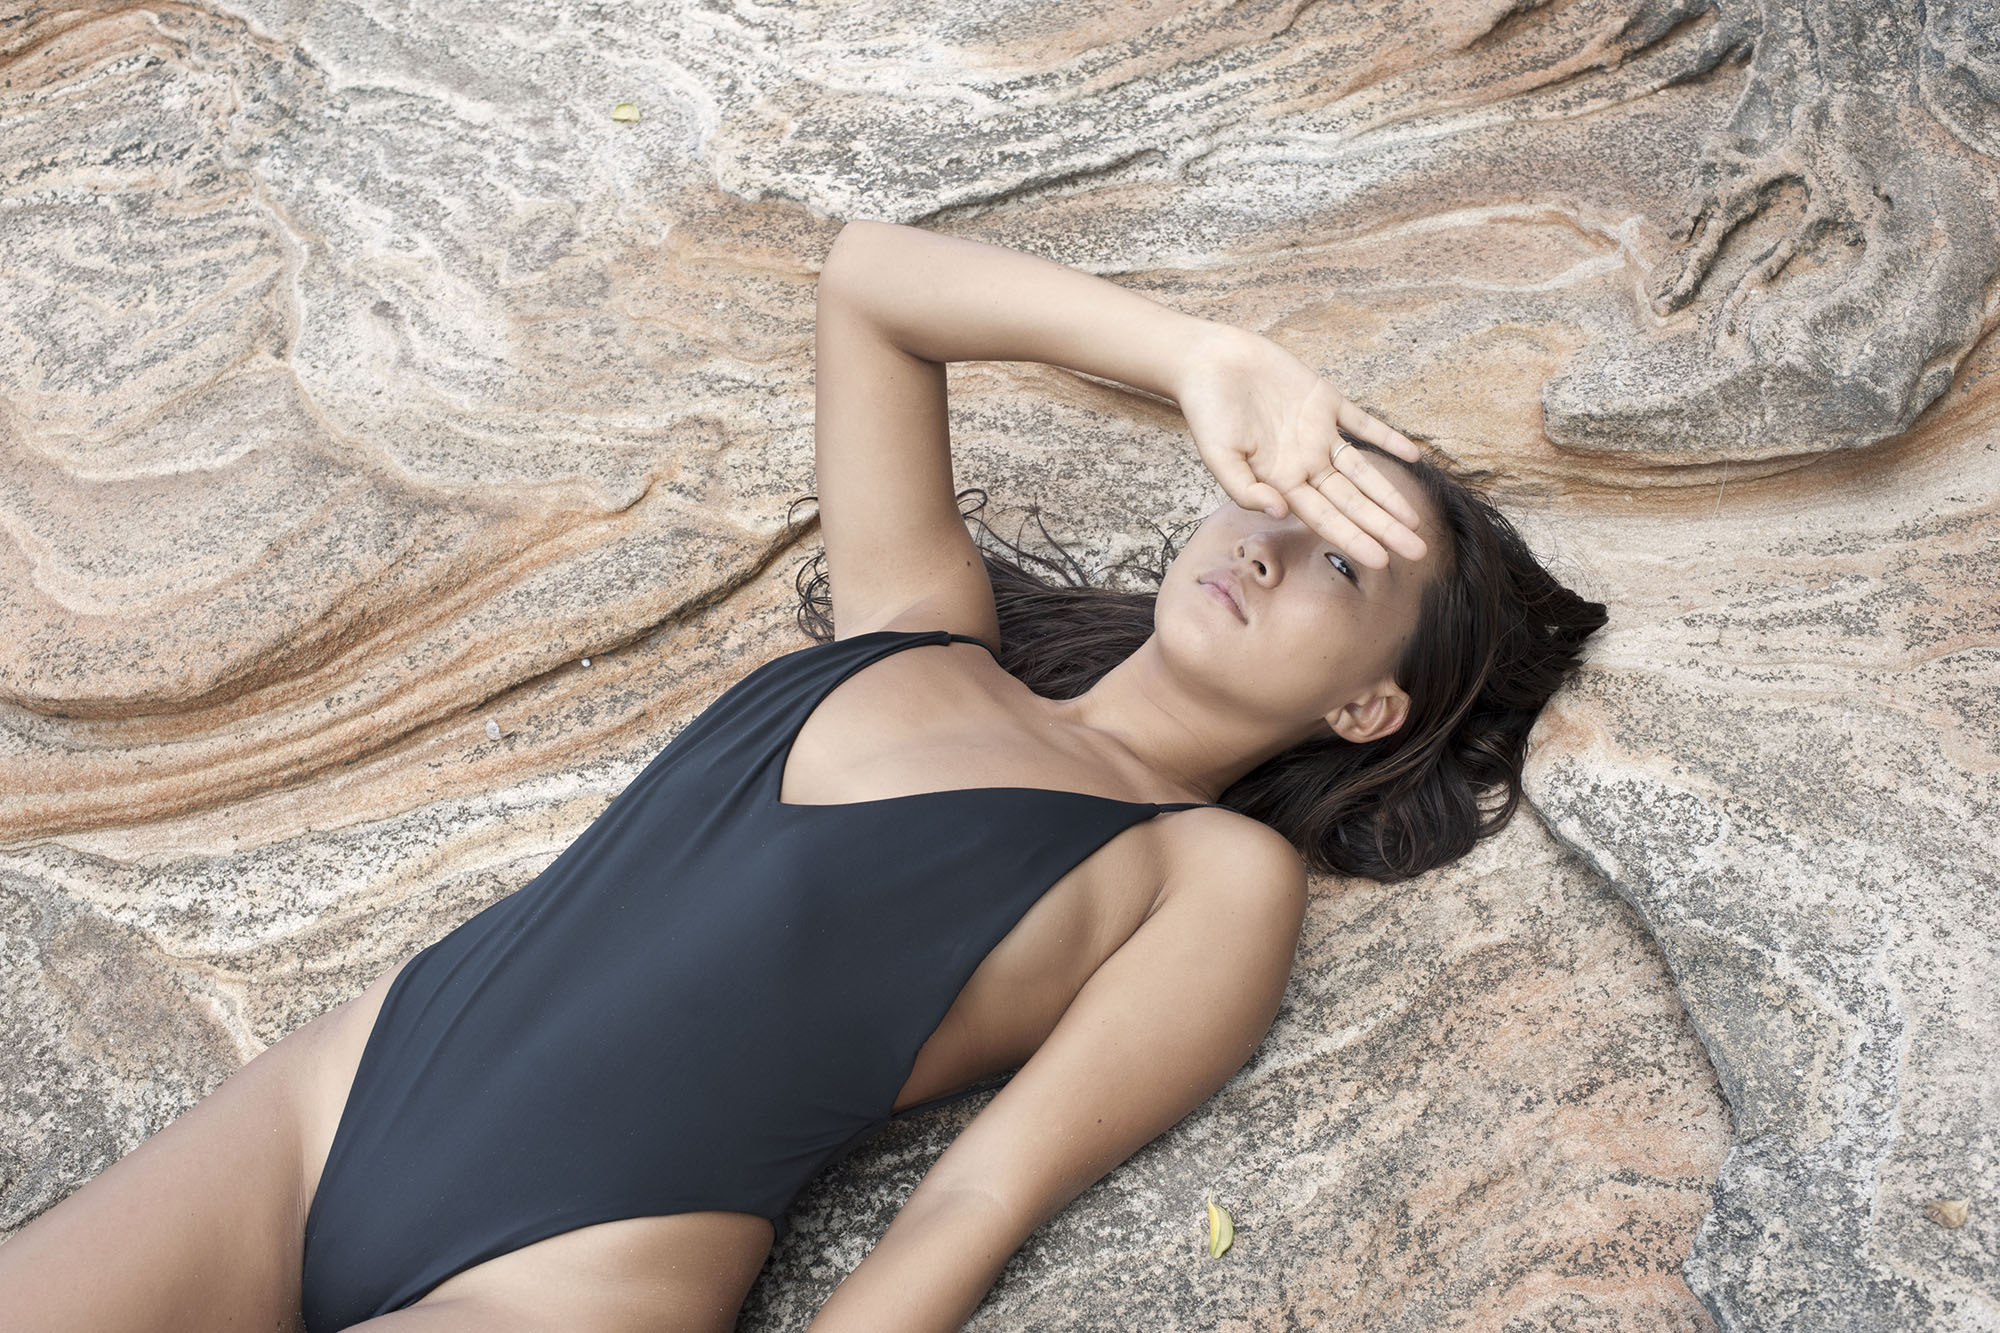 TBP, Tom, Batrouney, Photo, Photographer, Photography, Fashion, Model, Swim, Swimwear, Swimming, Face, Makeup, Eyes, Lips, Swimmer, Summer, Editorial, Bikini, Beach, Sand, Salty, Water, Wet, Sea,